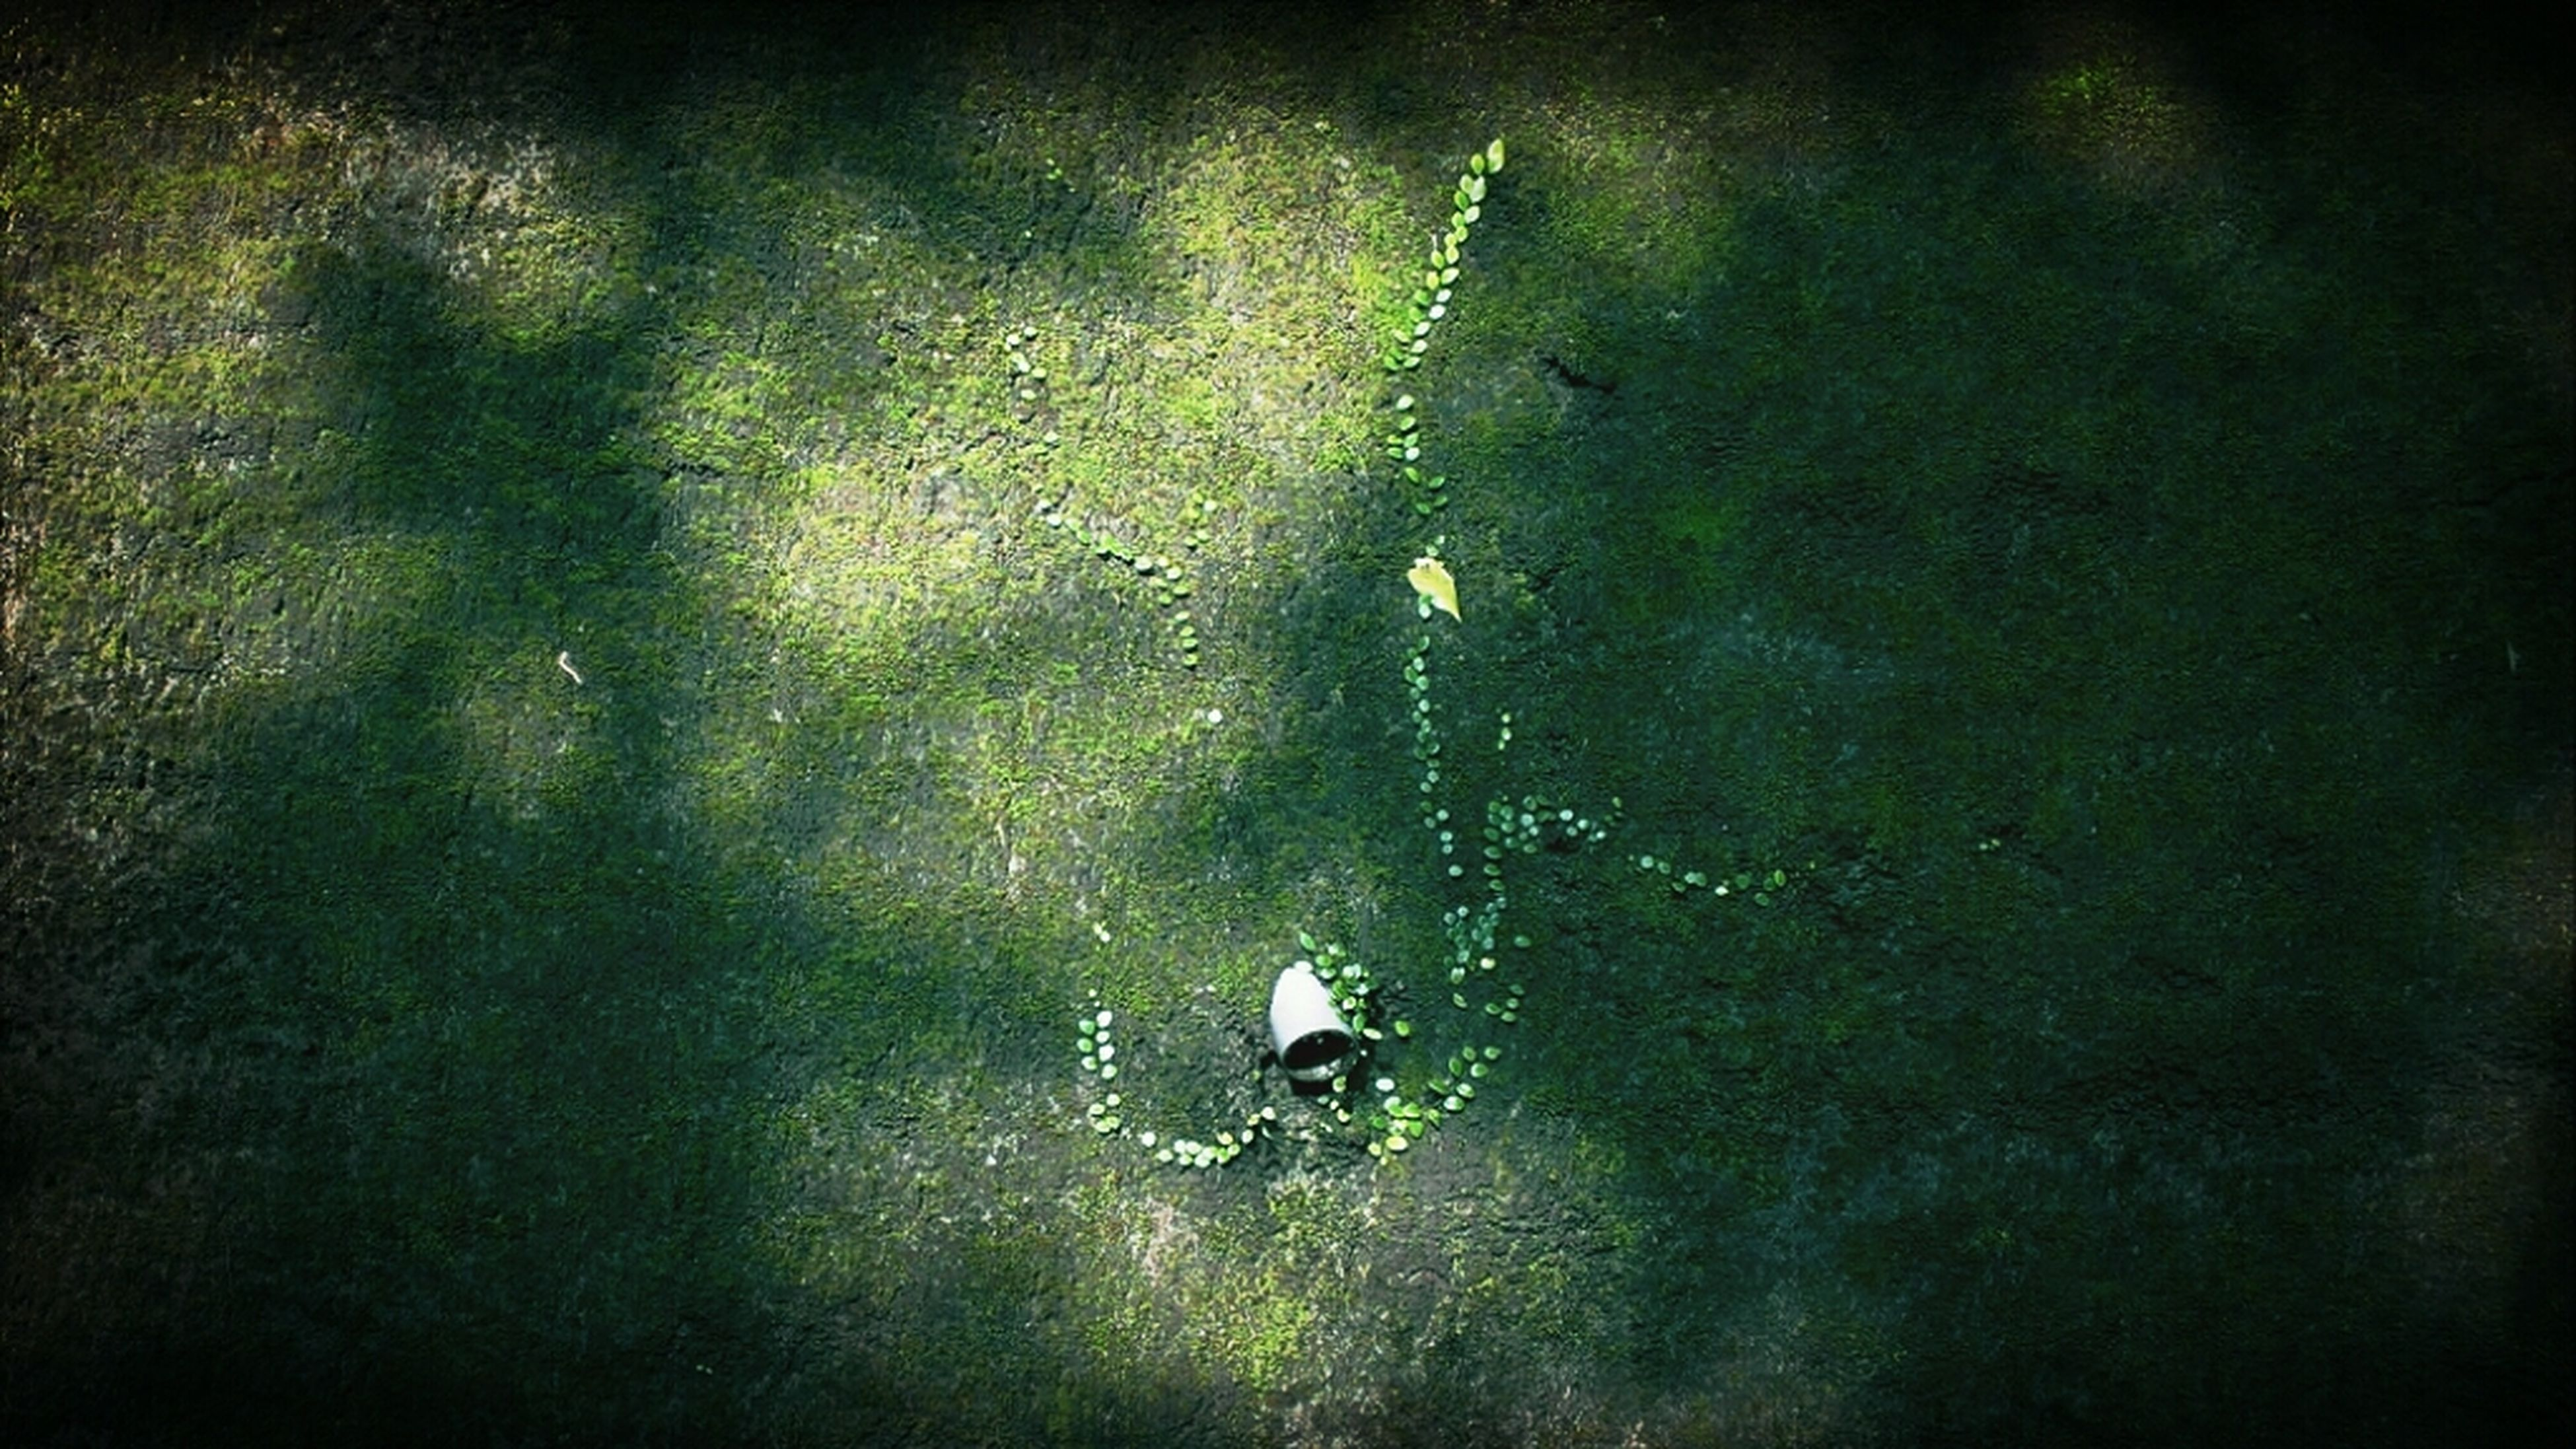 animal themes, high angle view, animals in the wild, wildlife, swimming, water, grass, shadow, nature, bird, sunlight, field, outdoors, lifestyles, tranquility, men, full length, day